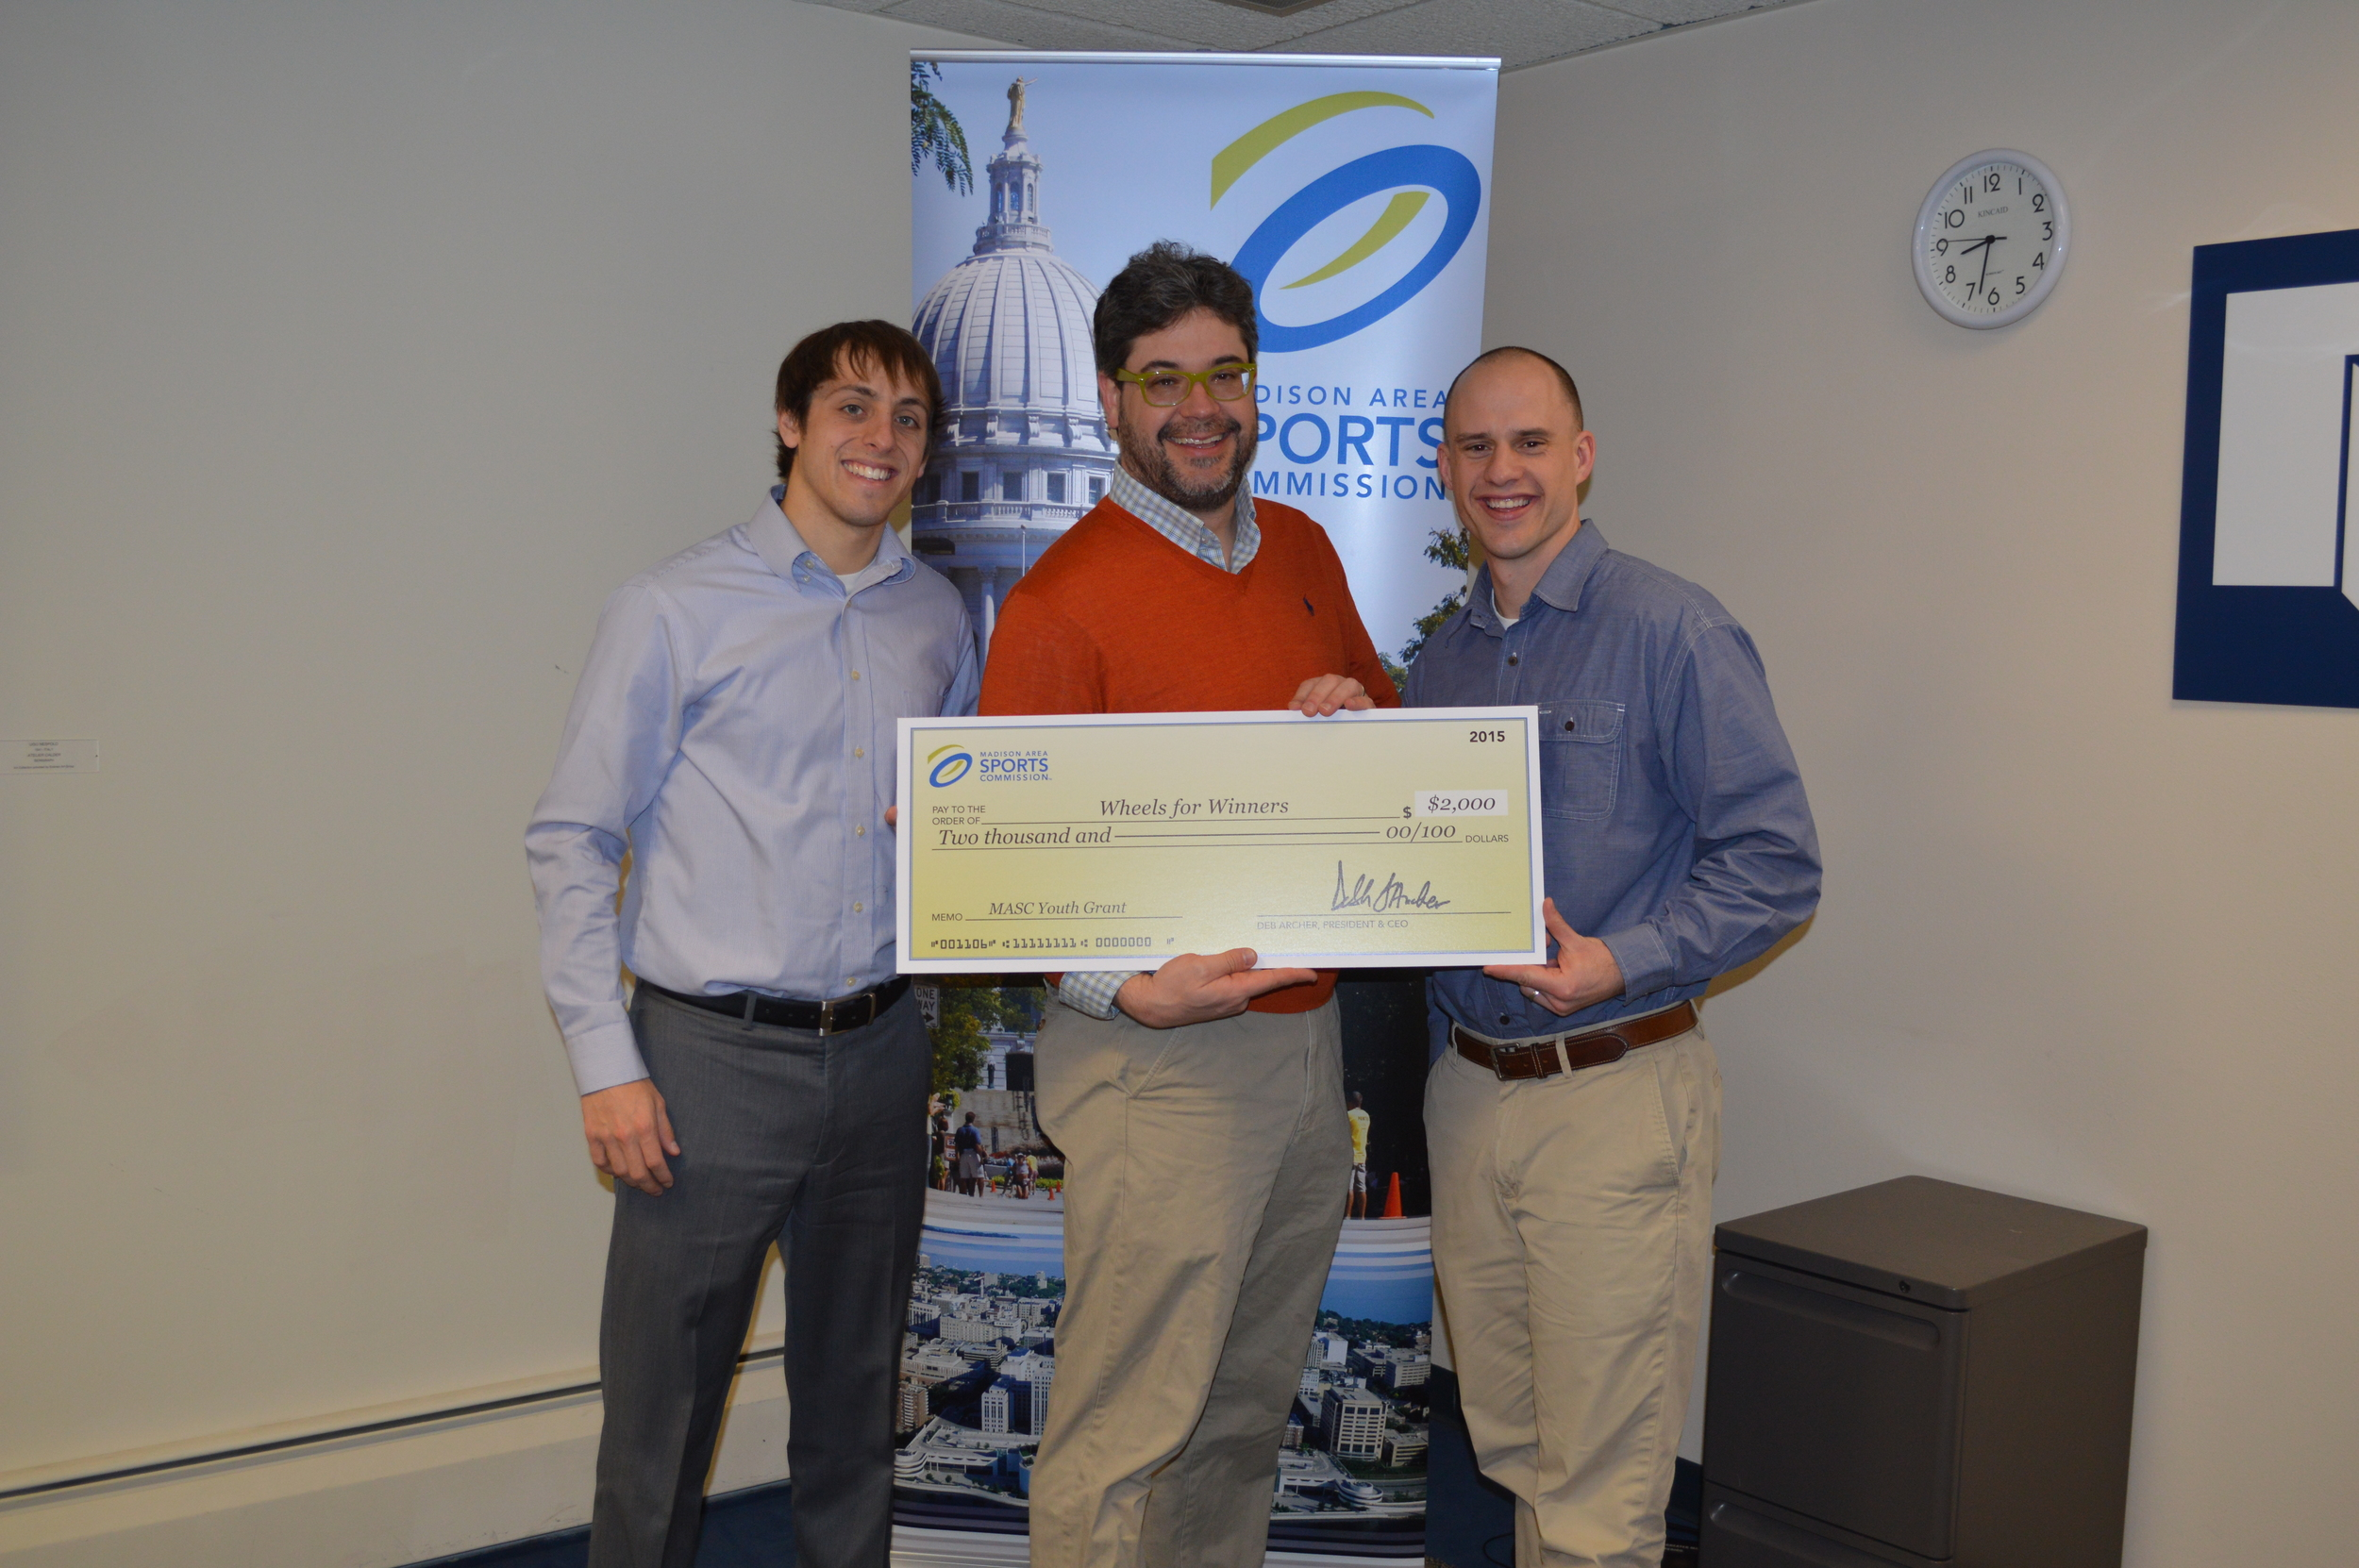 A big thanks to the  Madison Area Sport Commission  for choosing Wheels for Winners as one of the recipients of this year's youth grant. Pictured from left to right: Brandon Holstein (MASC Account Manager), Stephen Bagwell (Wheels for Winners President), and Jamie Patrick (MASC Vice President).